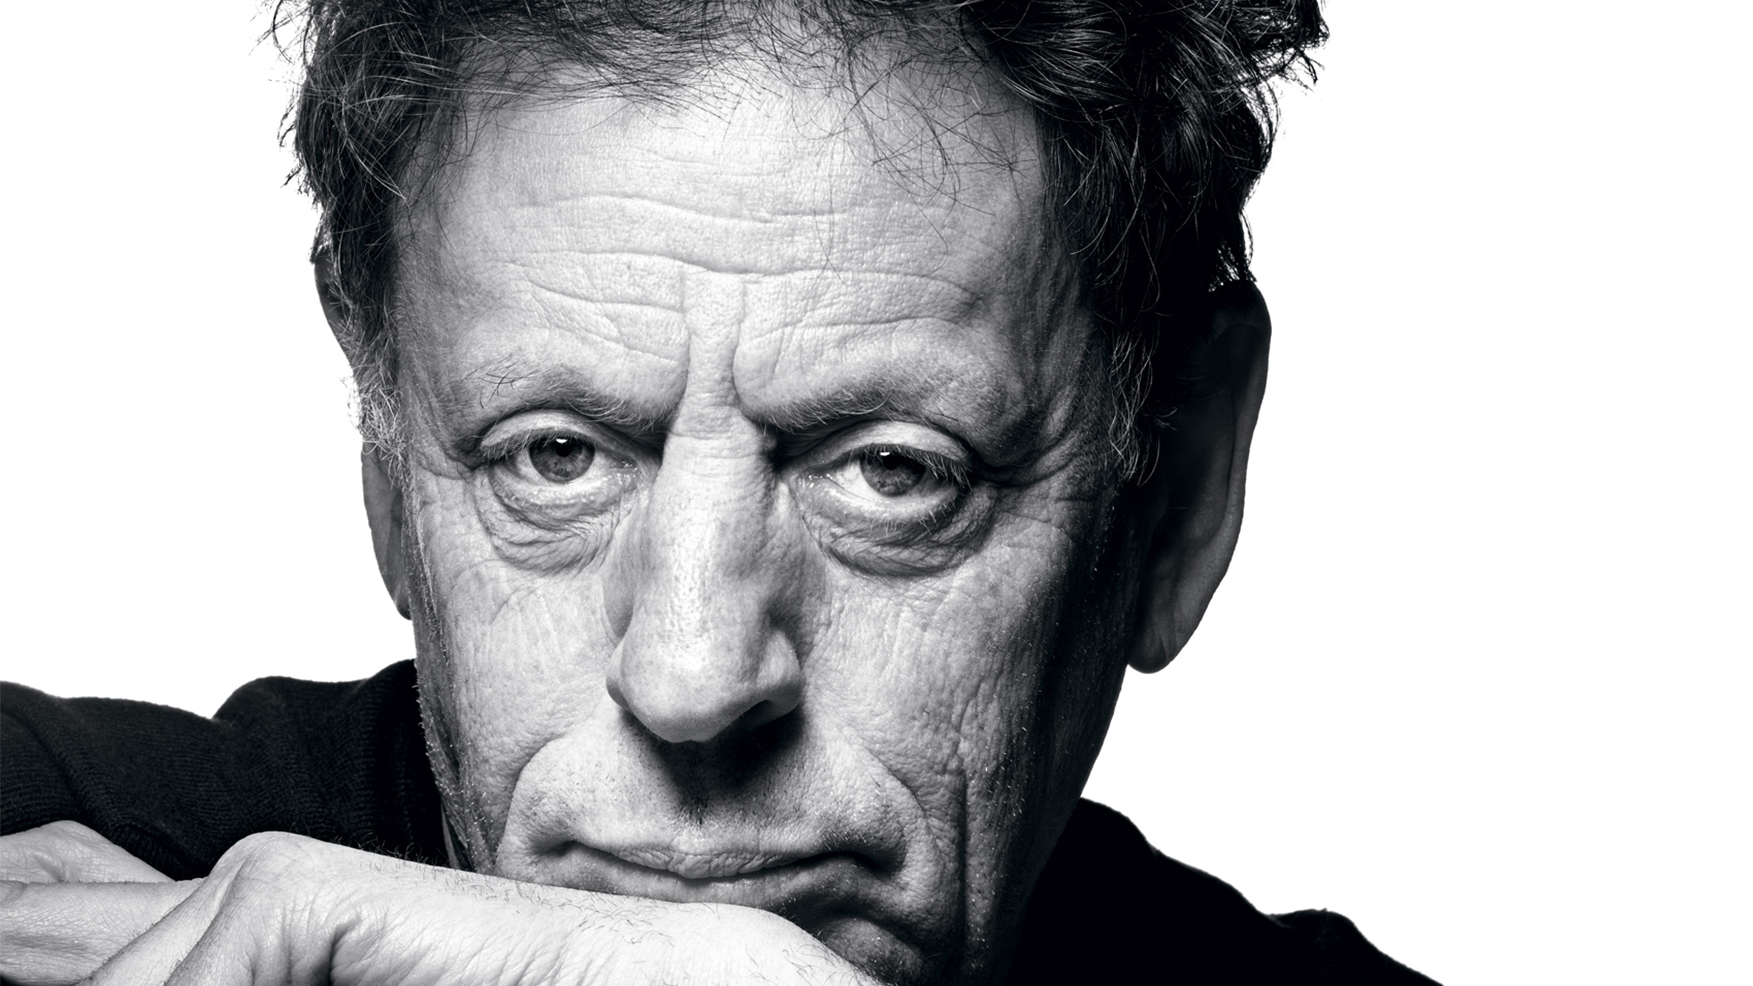 Philip Glass revisits his Music with Changing Parts, conducted by Michael Riesman